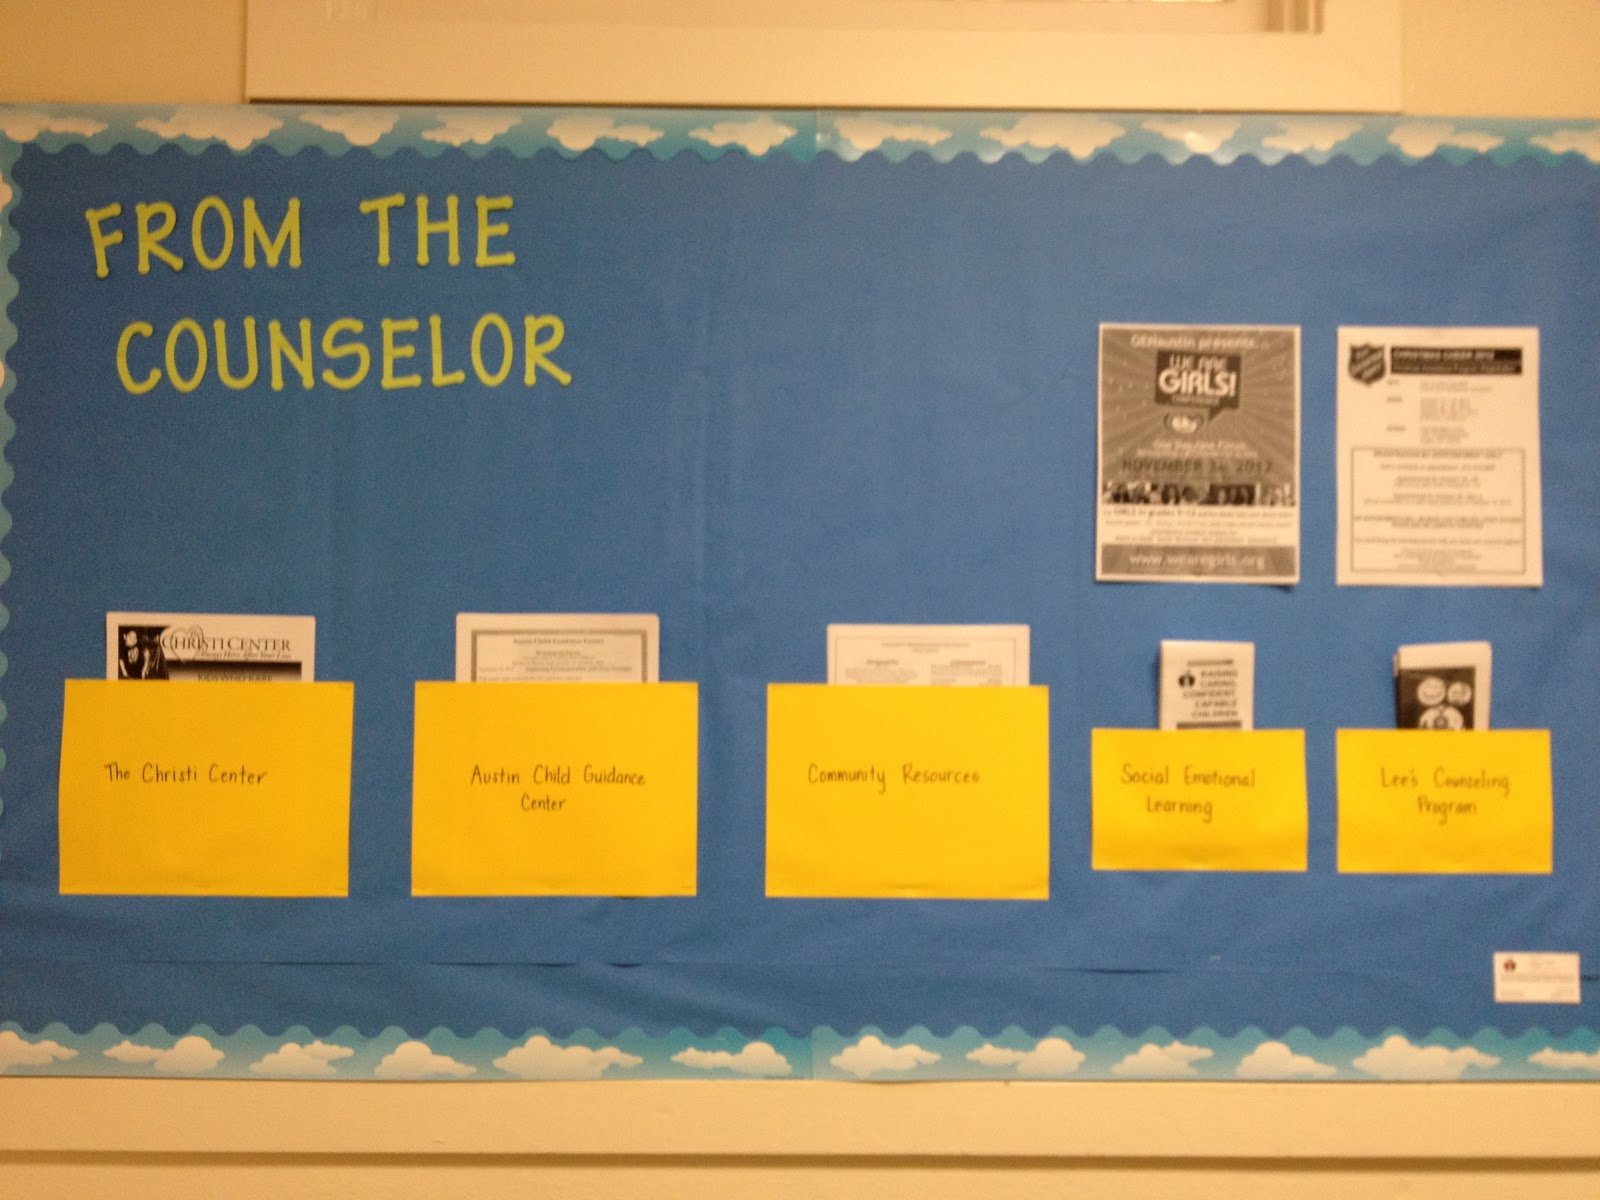 High School Counselor Bulletin Board Ideas Ms. sepp's counselor corner ...